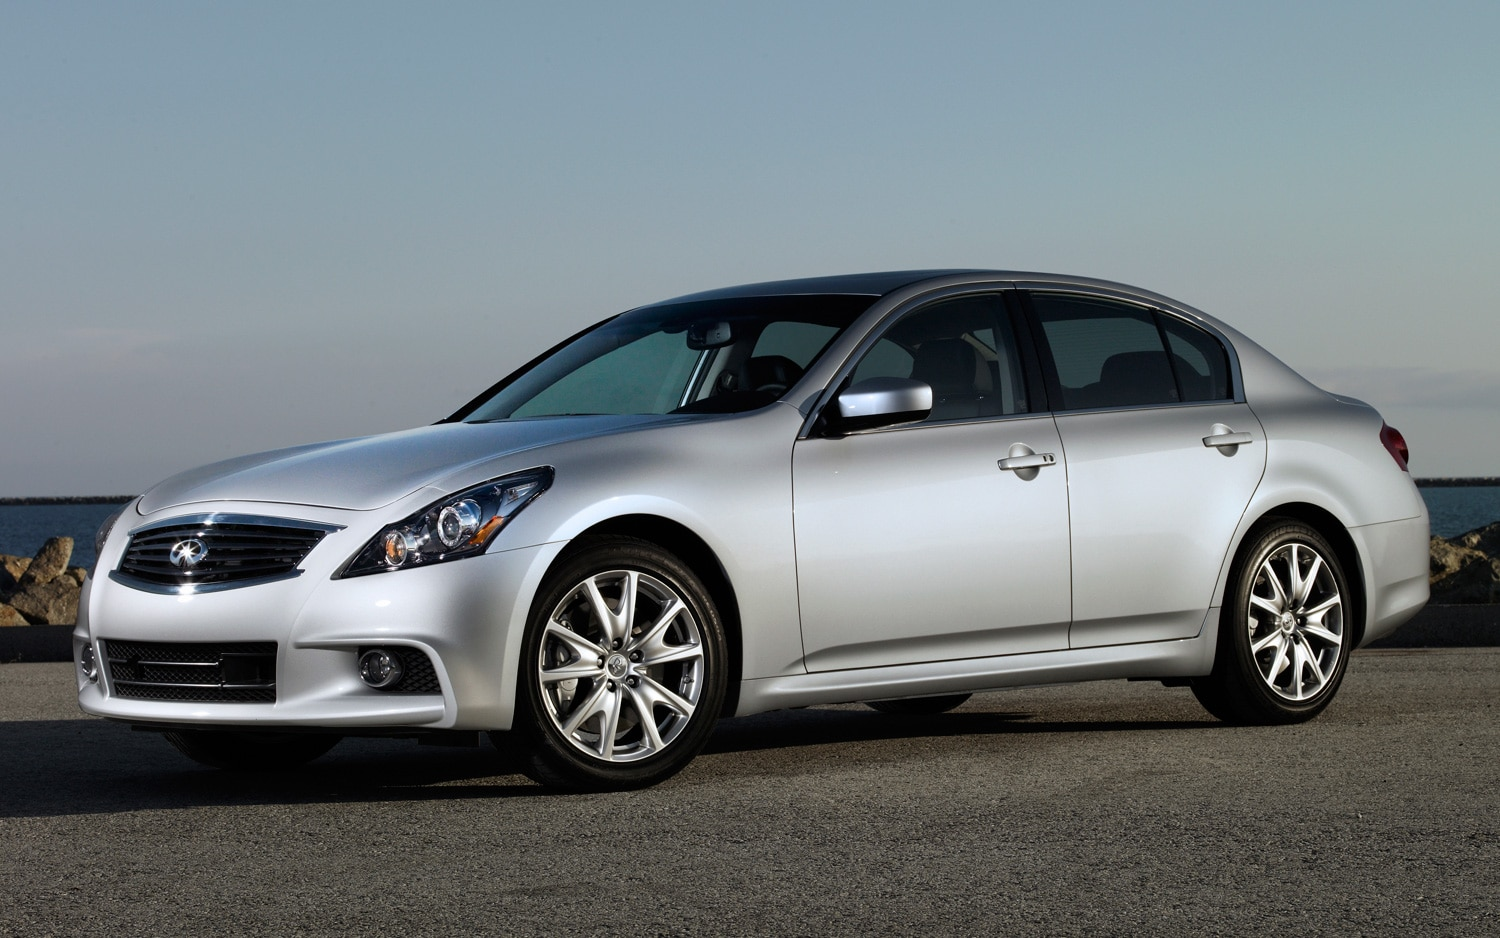 2013 Infiniti G37 Sedan Front Three Quarter11